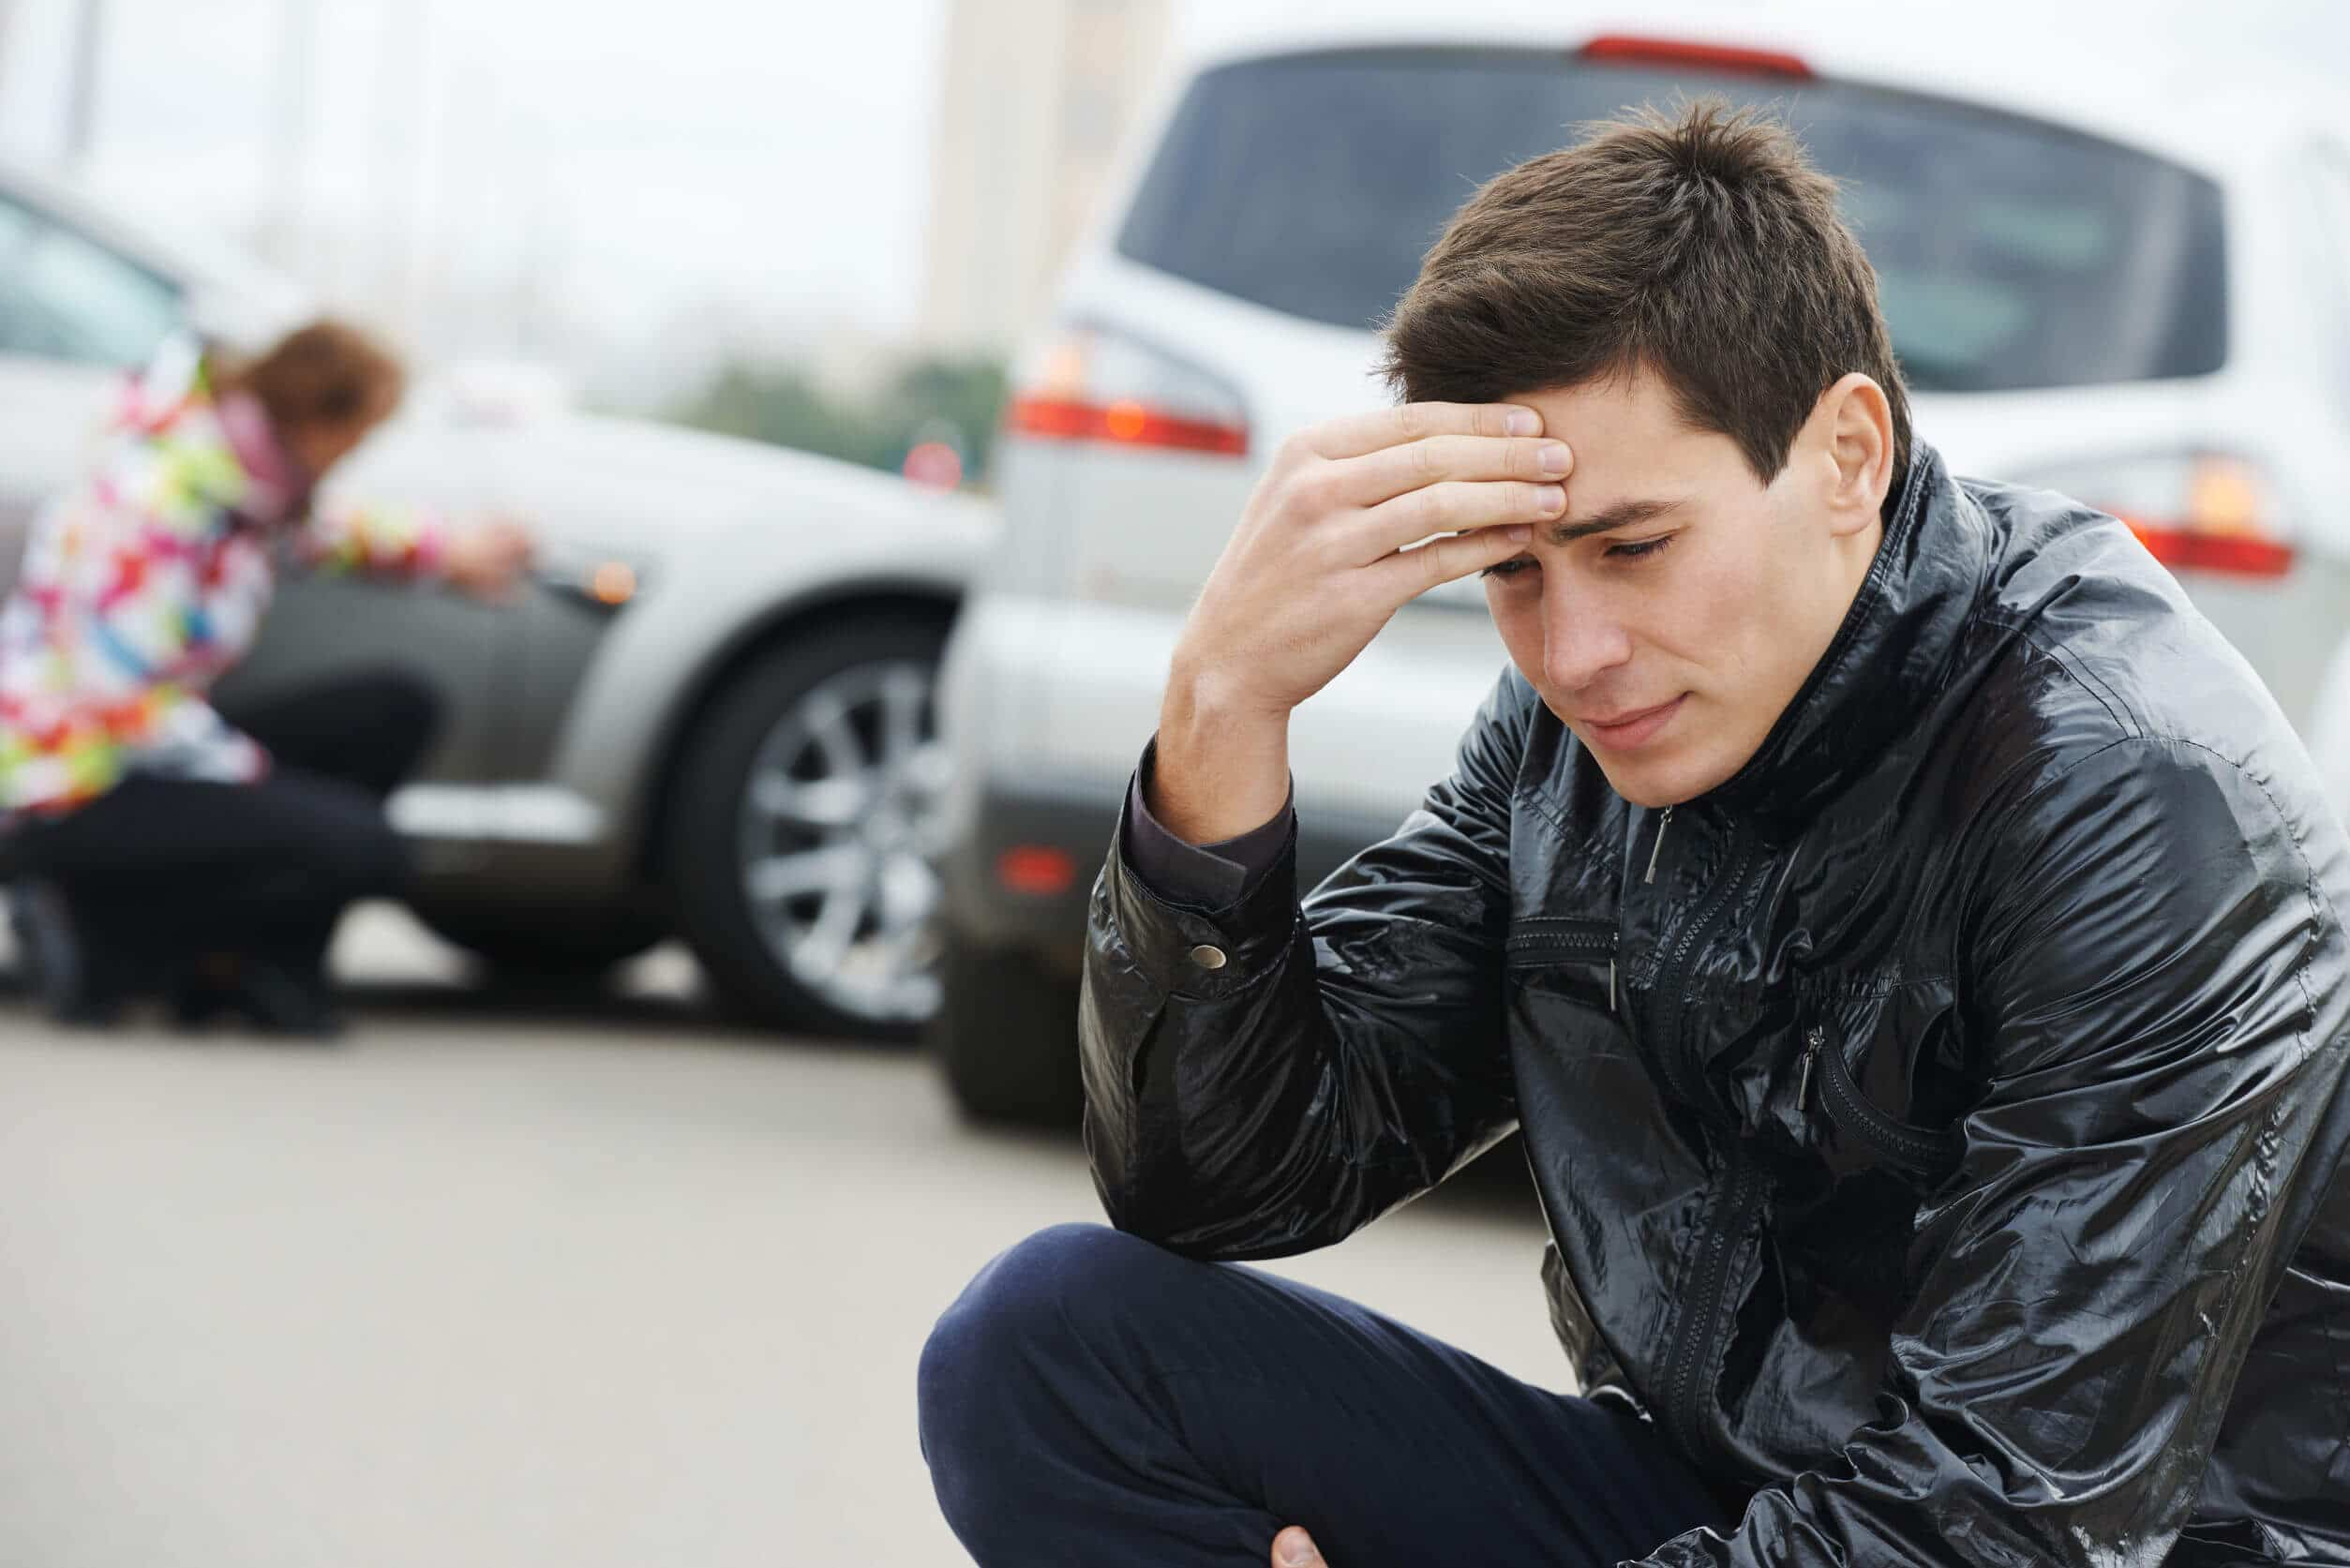 Failure To Identify Yourself After An Accident Is A Serious Crime in Texas